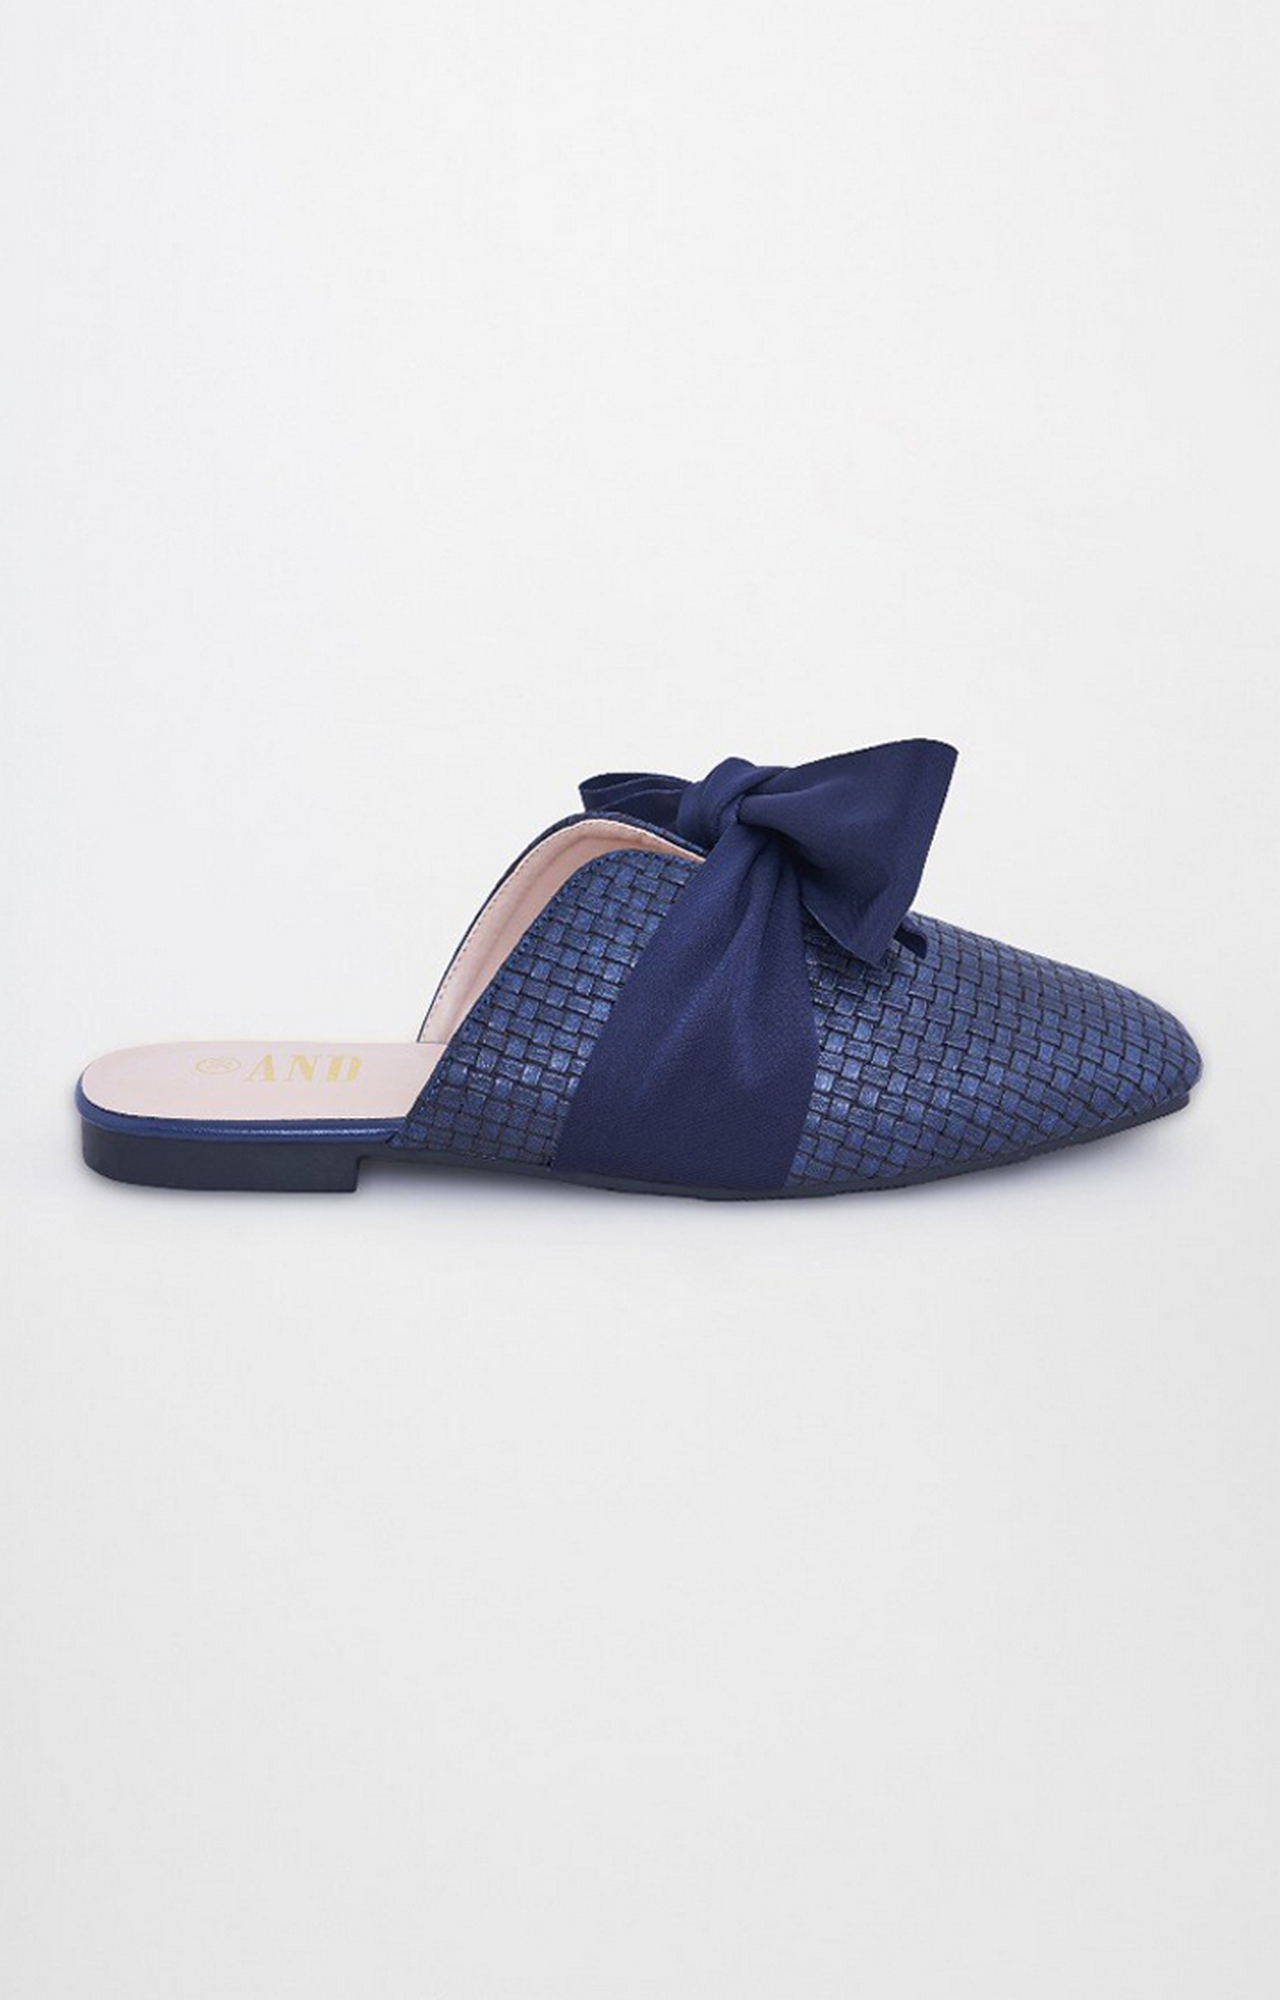 AND | Navy Slip-ons